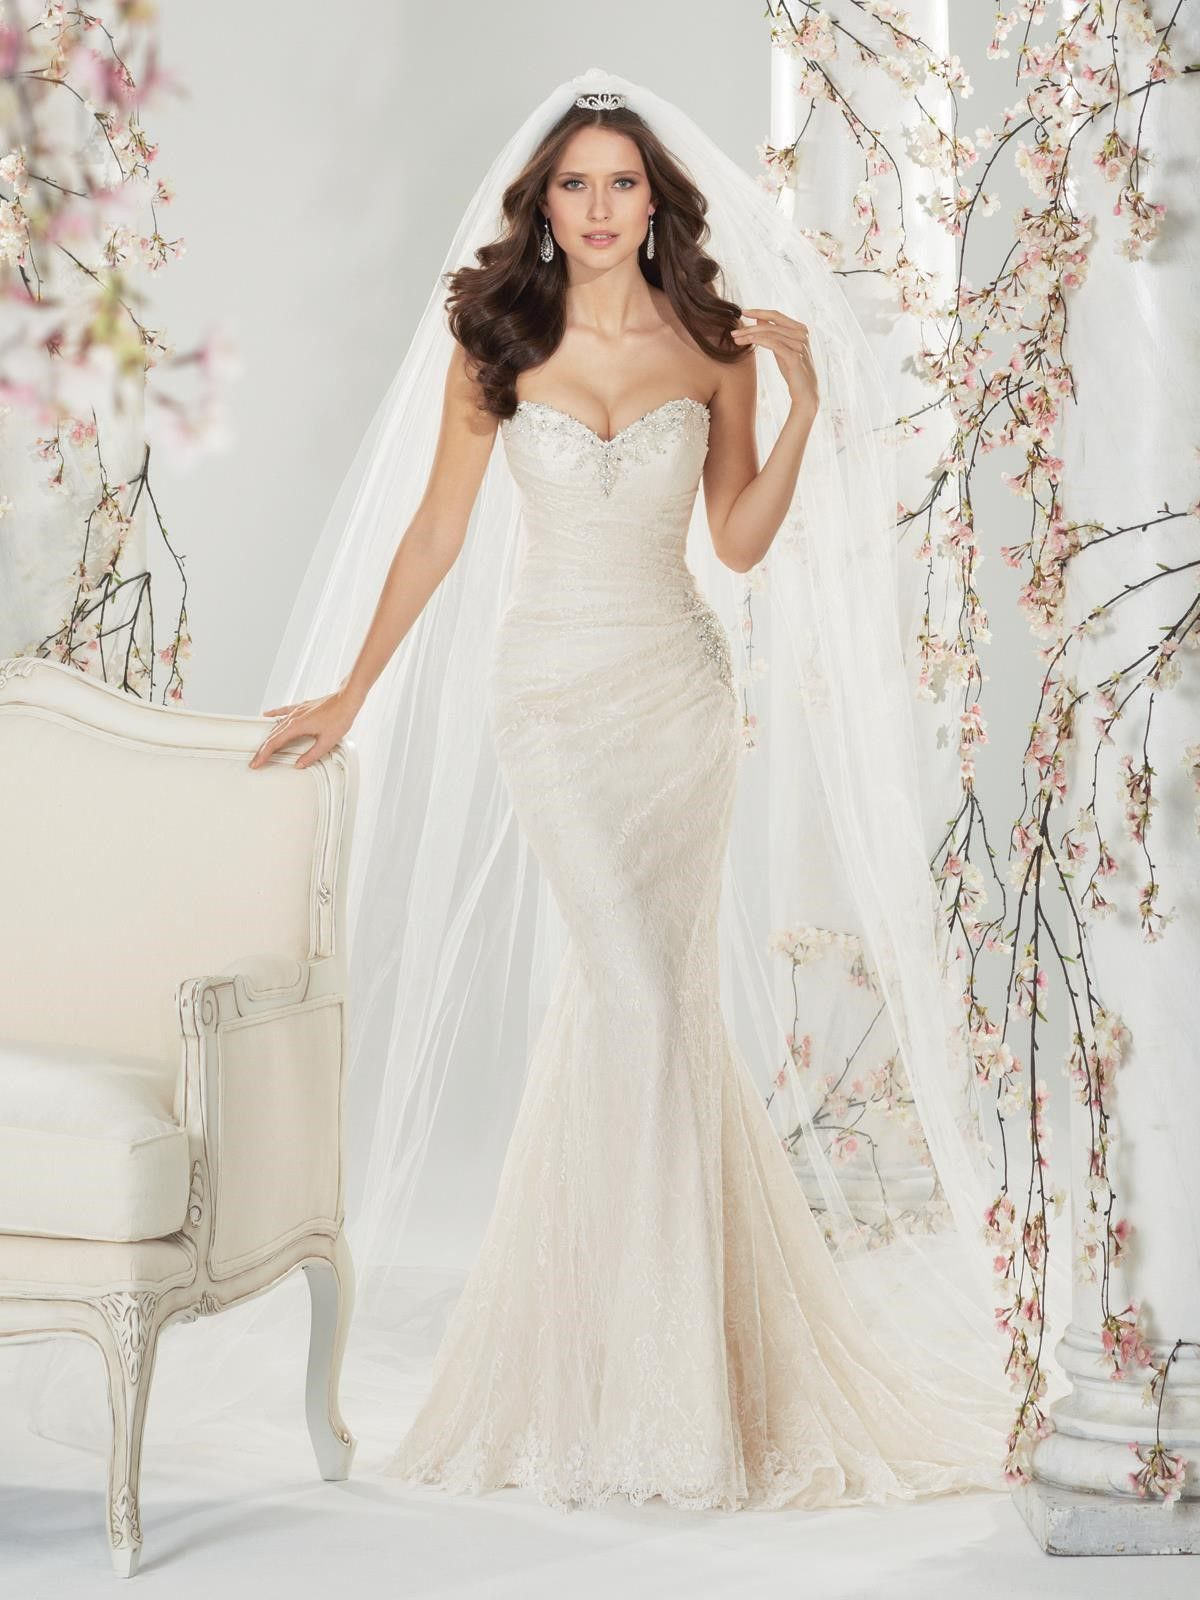 Most Expensive Wedding Dress On Say Yes To The: Expensive Lace Wedding Dresses At Websimilar.org